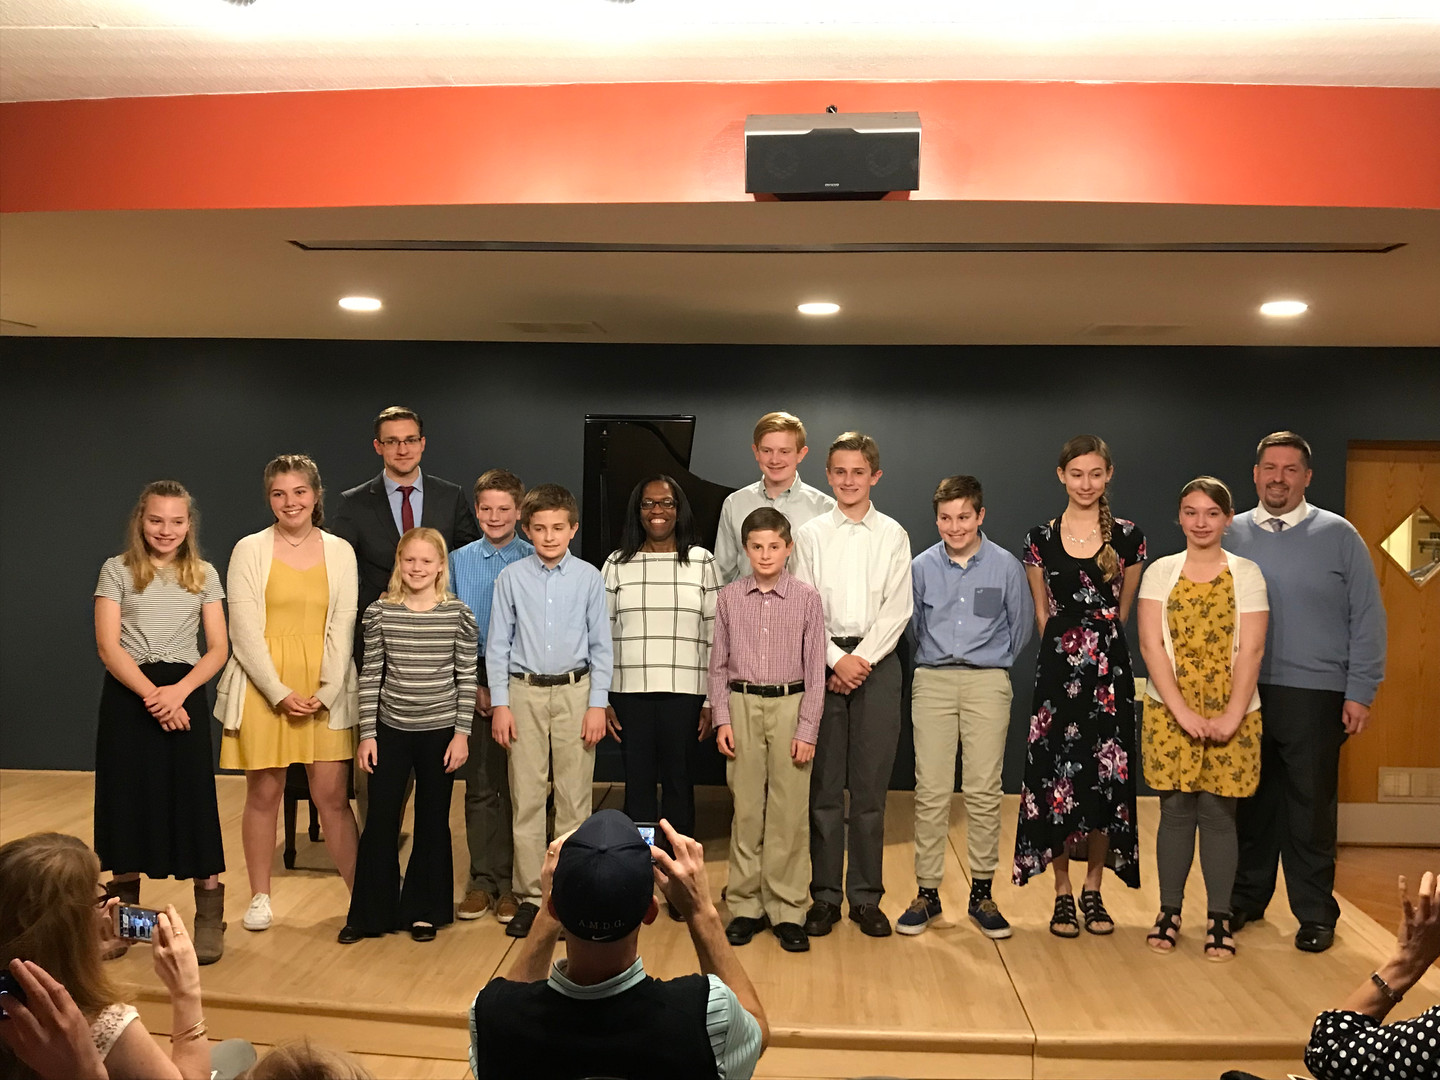 Recital2019group.jpg